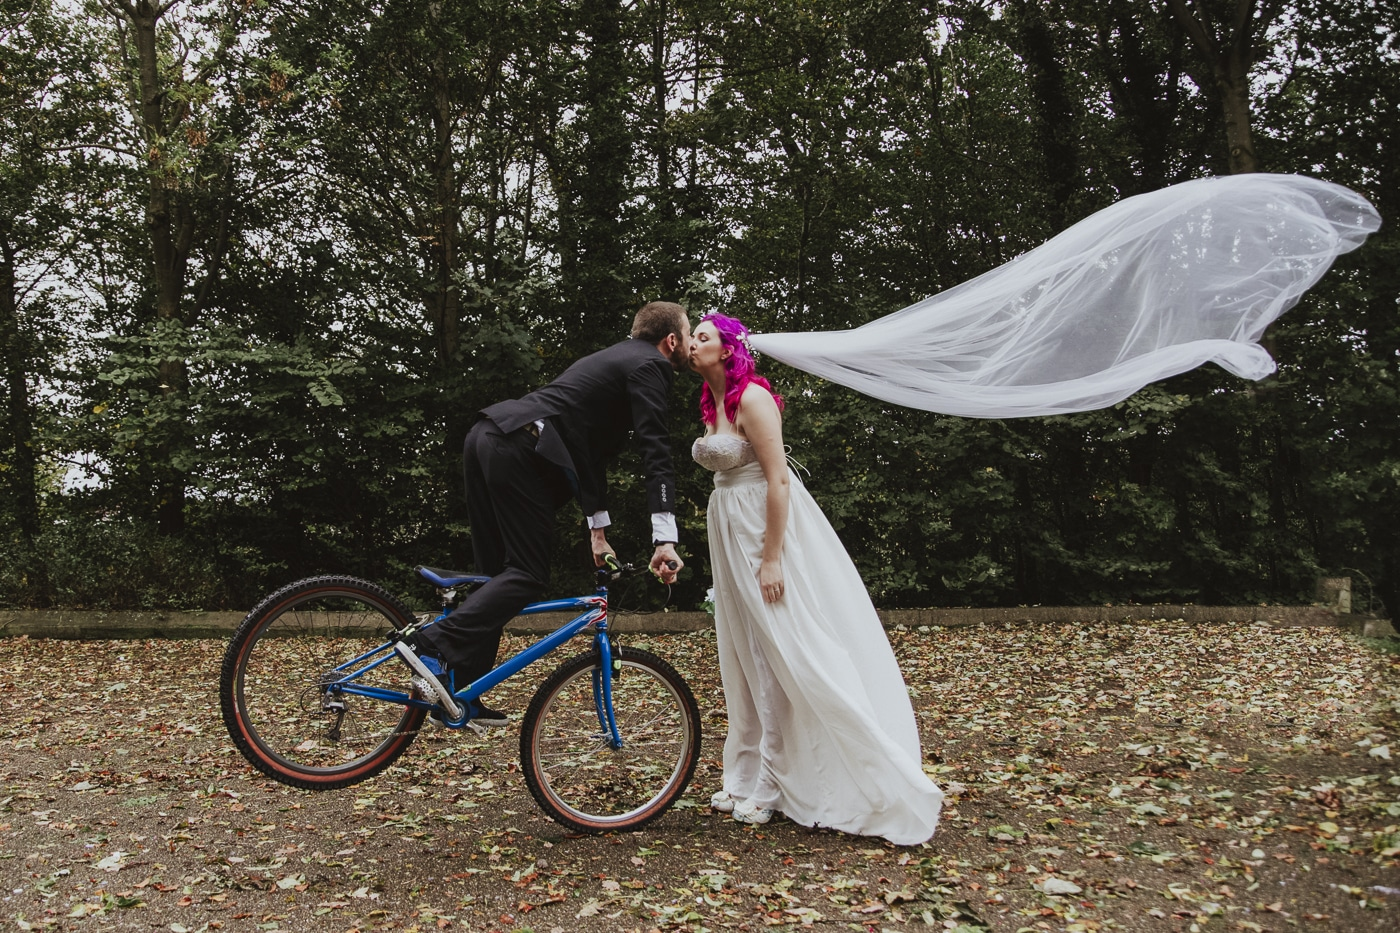 Bride with veil and groom on bike kissing by Joshua Wyborn